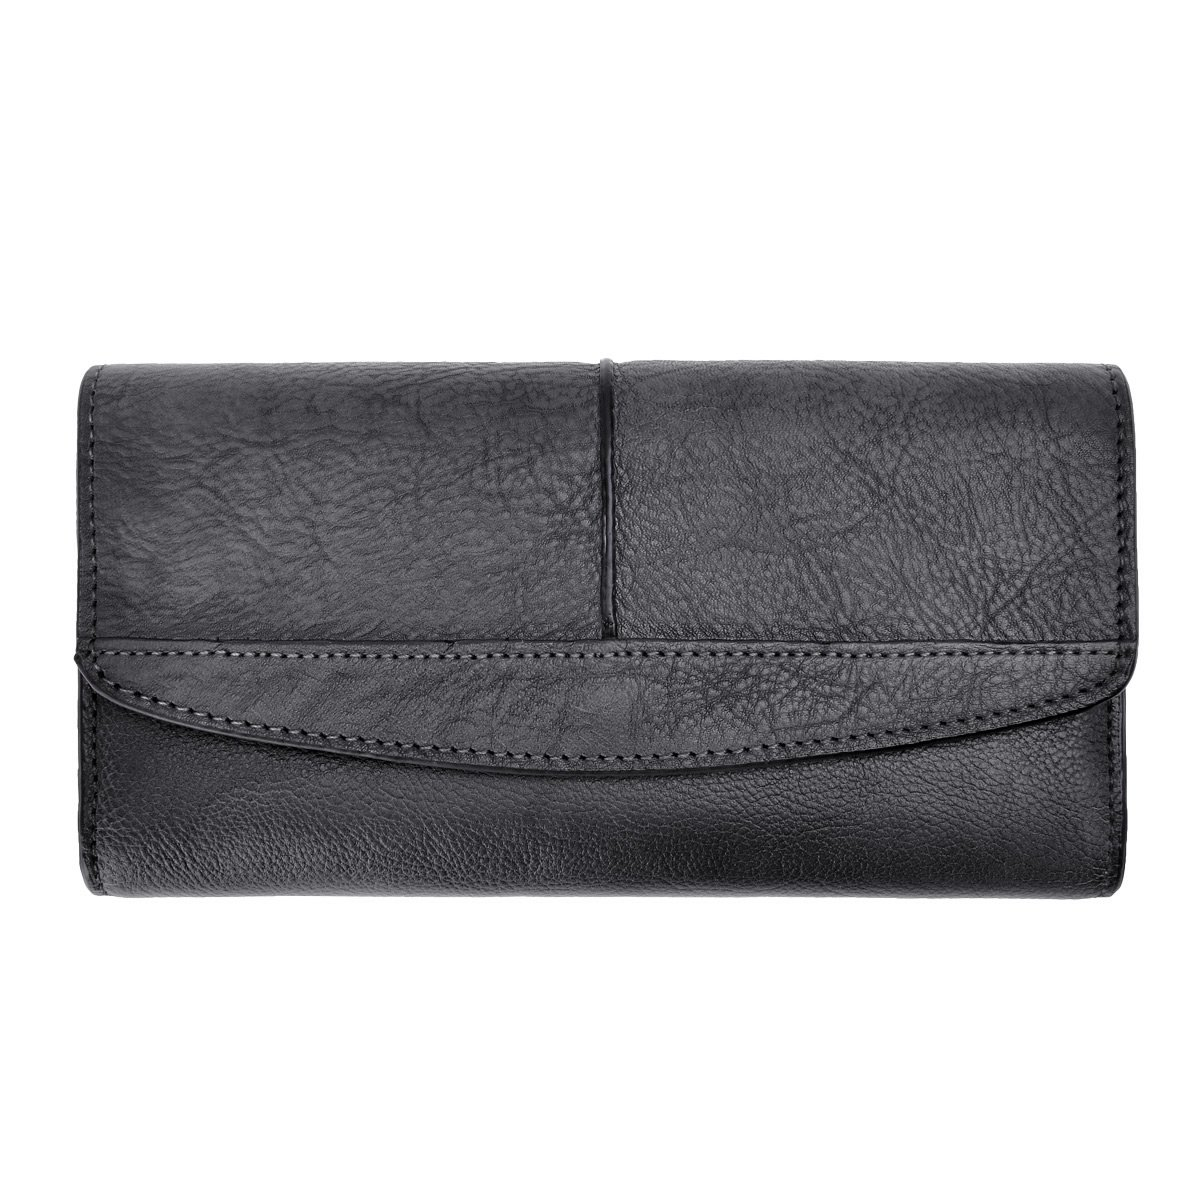 ZLYC Women's Large Capacity Leather Clutch Wallet With Zipper Pocket (Grey)